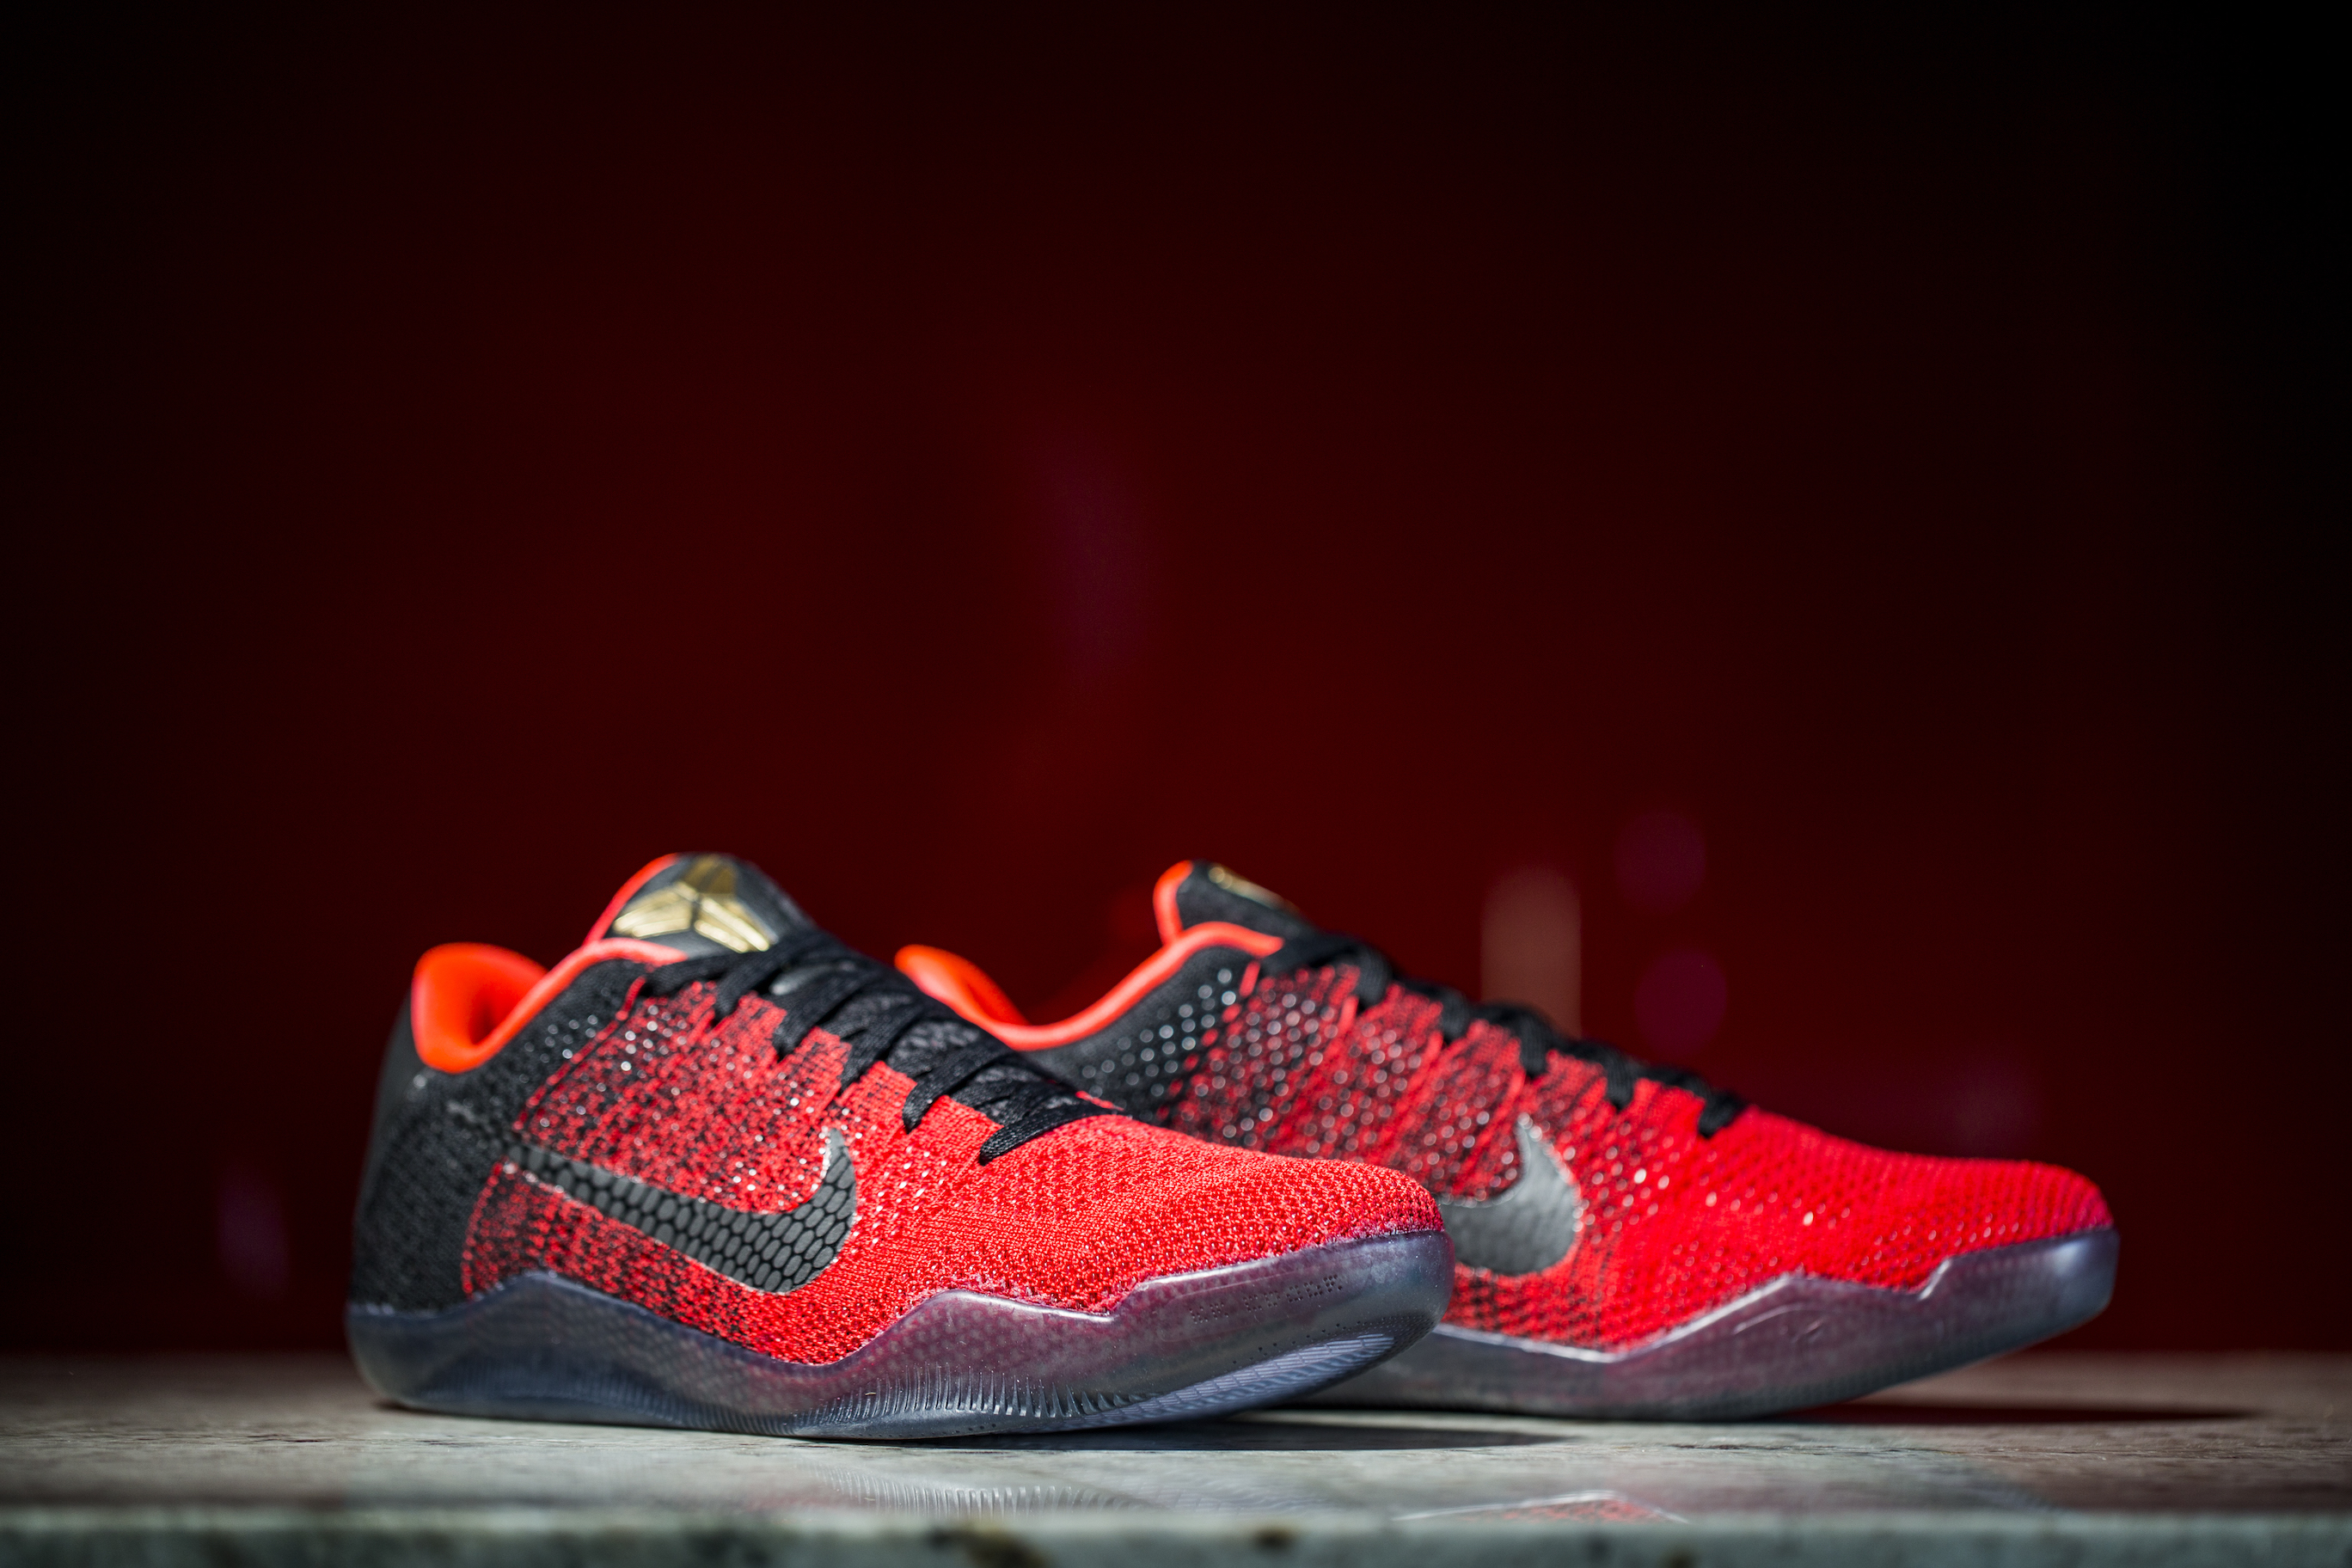 72f4046d0f9 denmark nike kobe 11 carpe diem 4adc9 2d517  cheap get intimate with the nike  kobe xi achilles heel 91af5 d0877